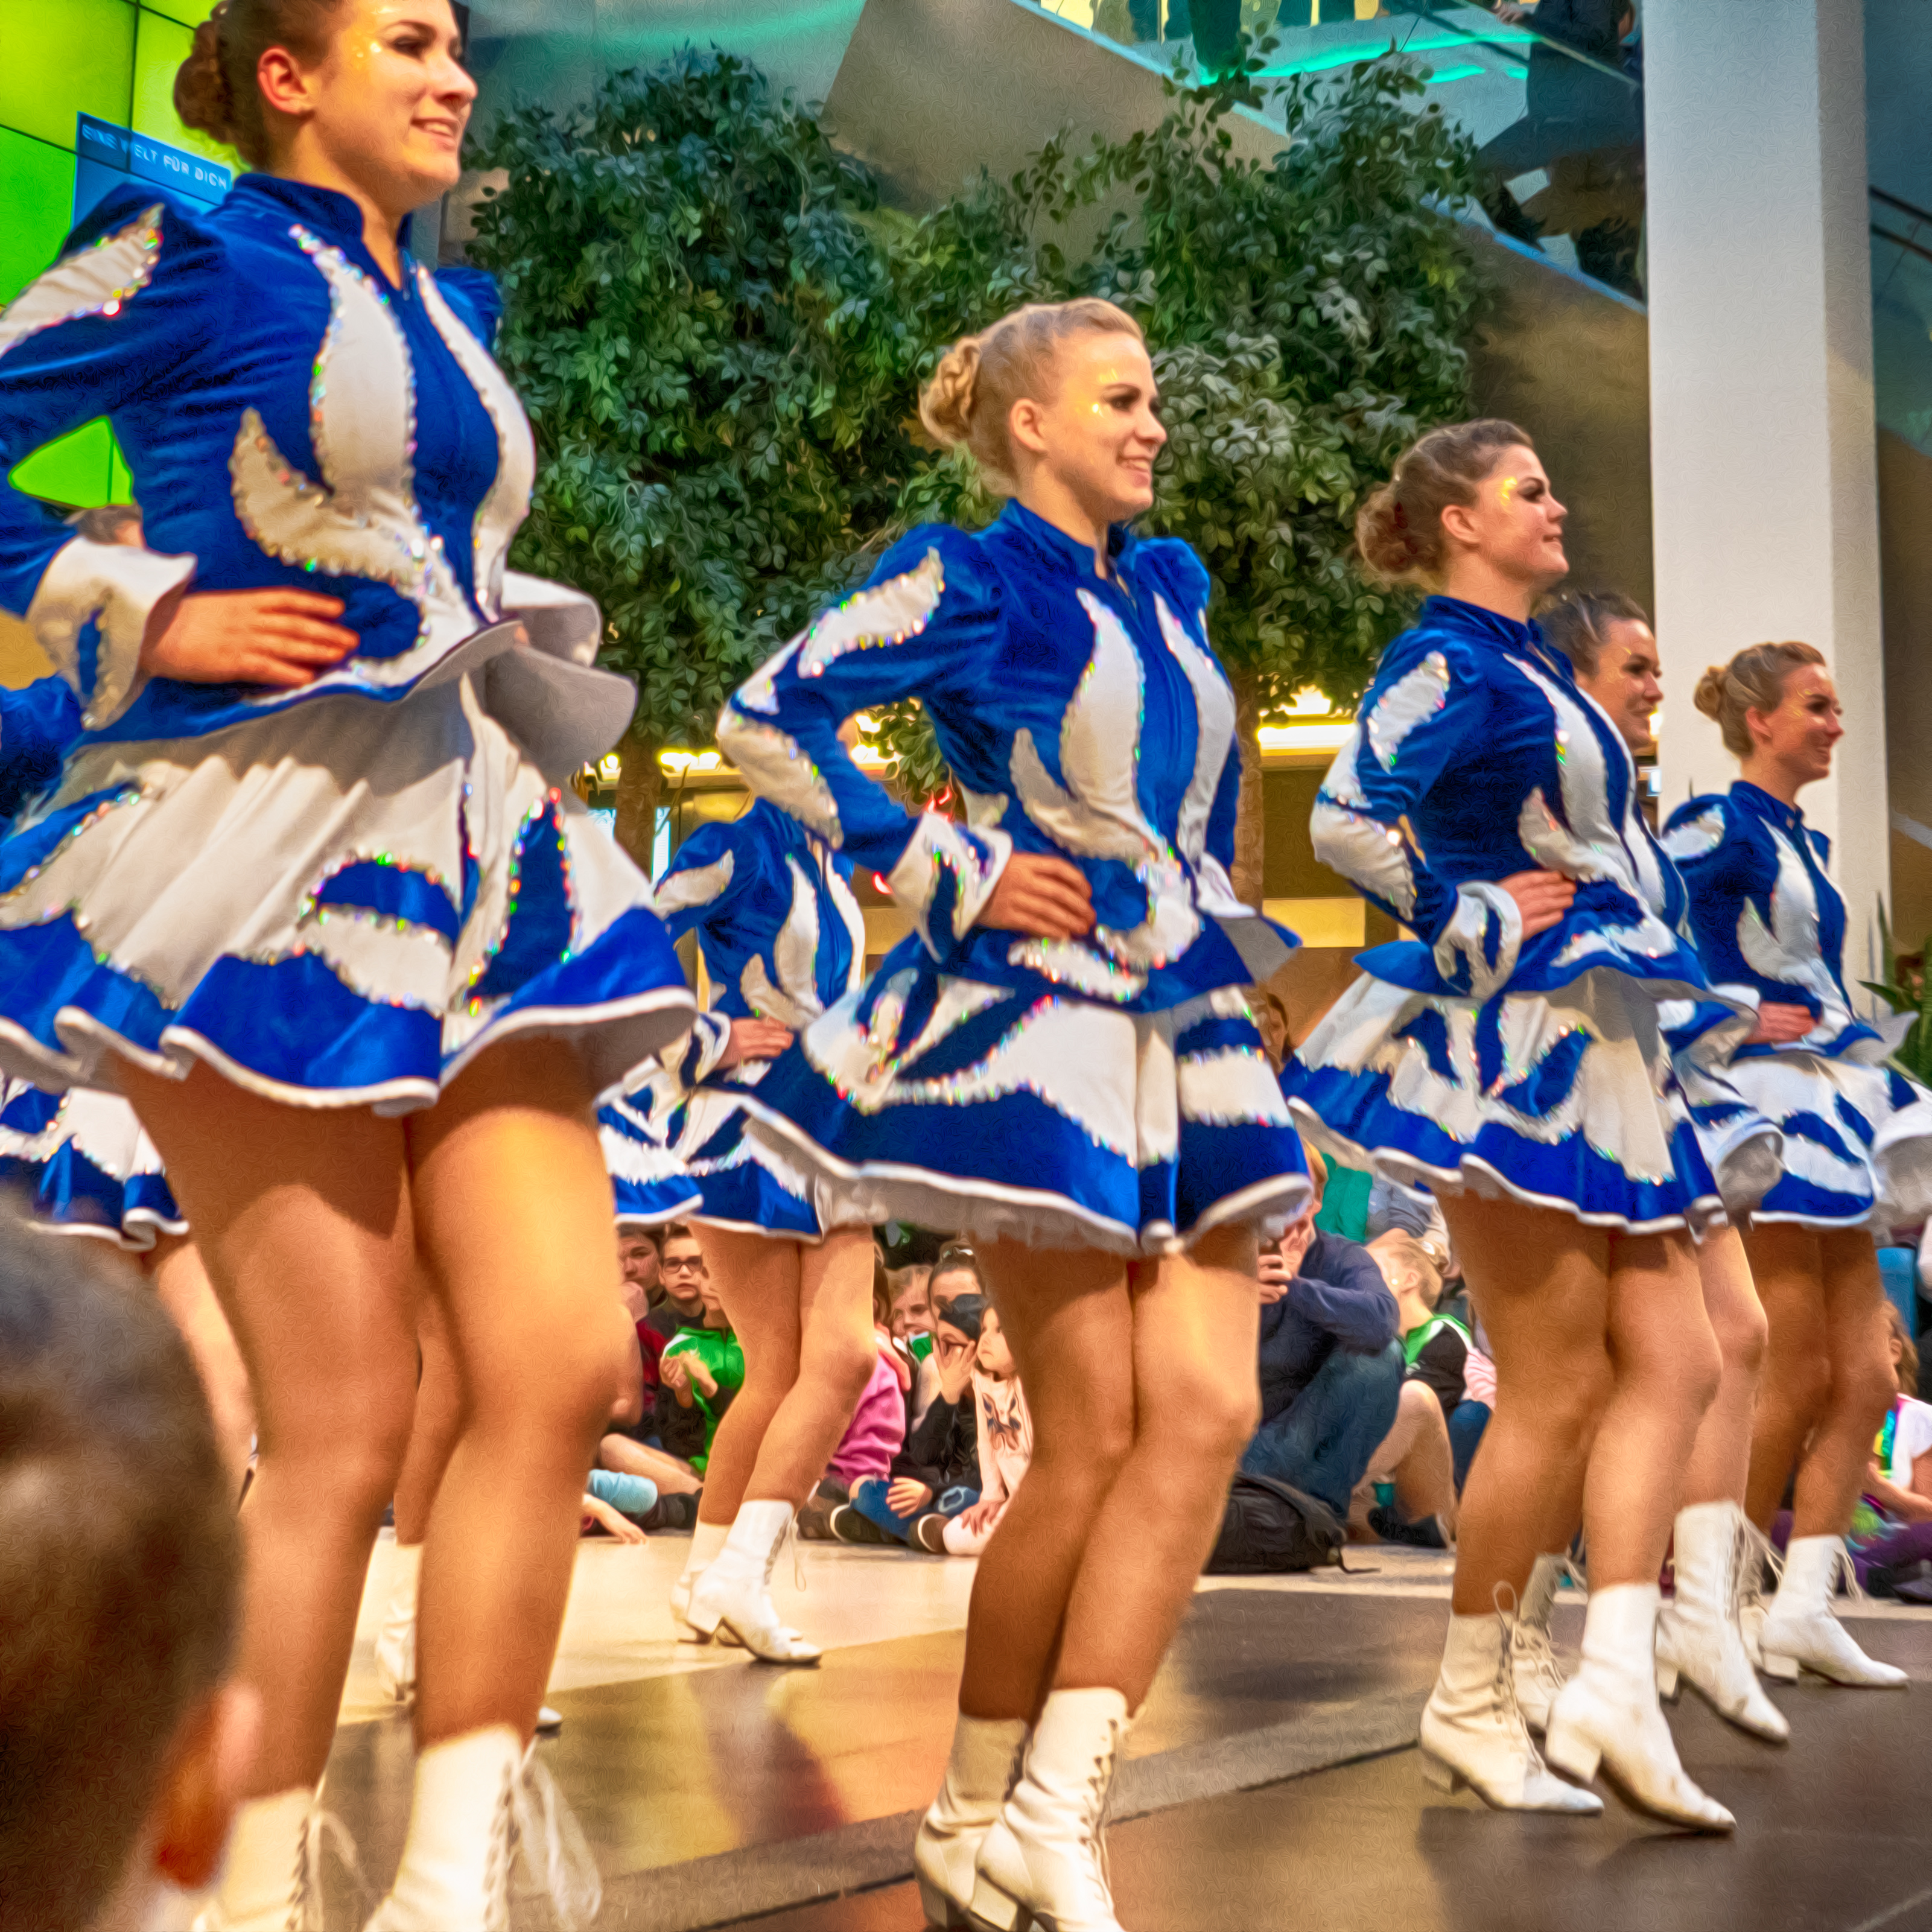 Free download high resolution image - free image free photo free stock image public domain picture -Gruppe von Cheerleadern in Aktion